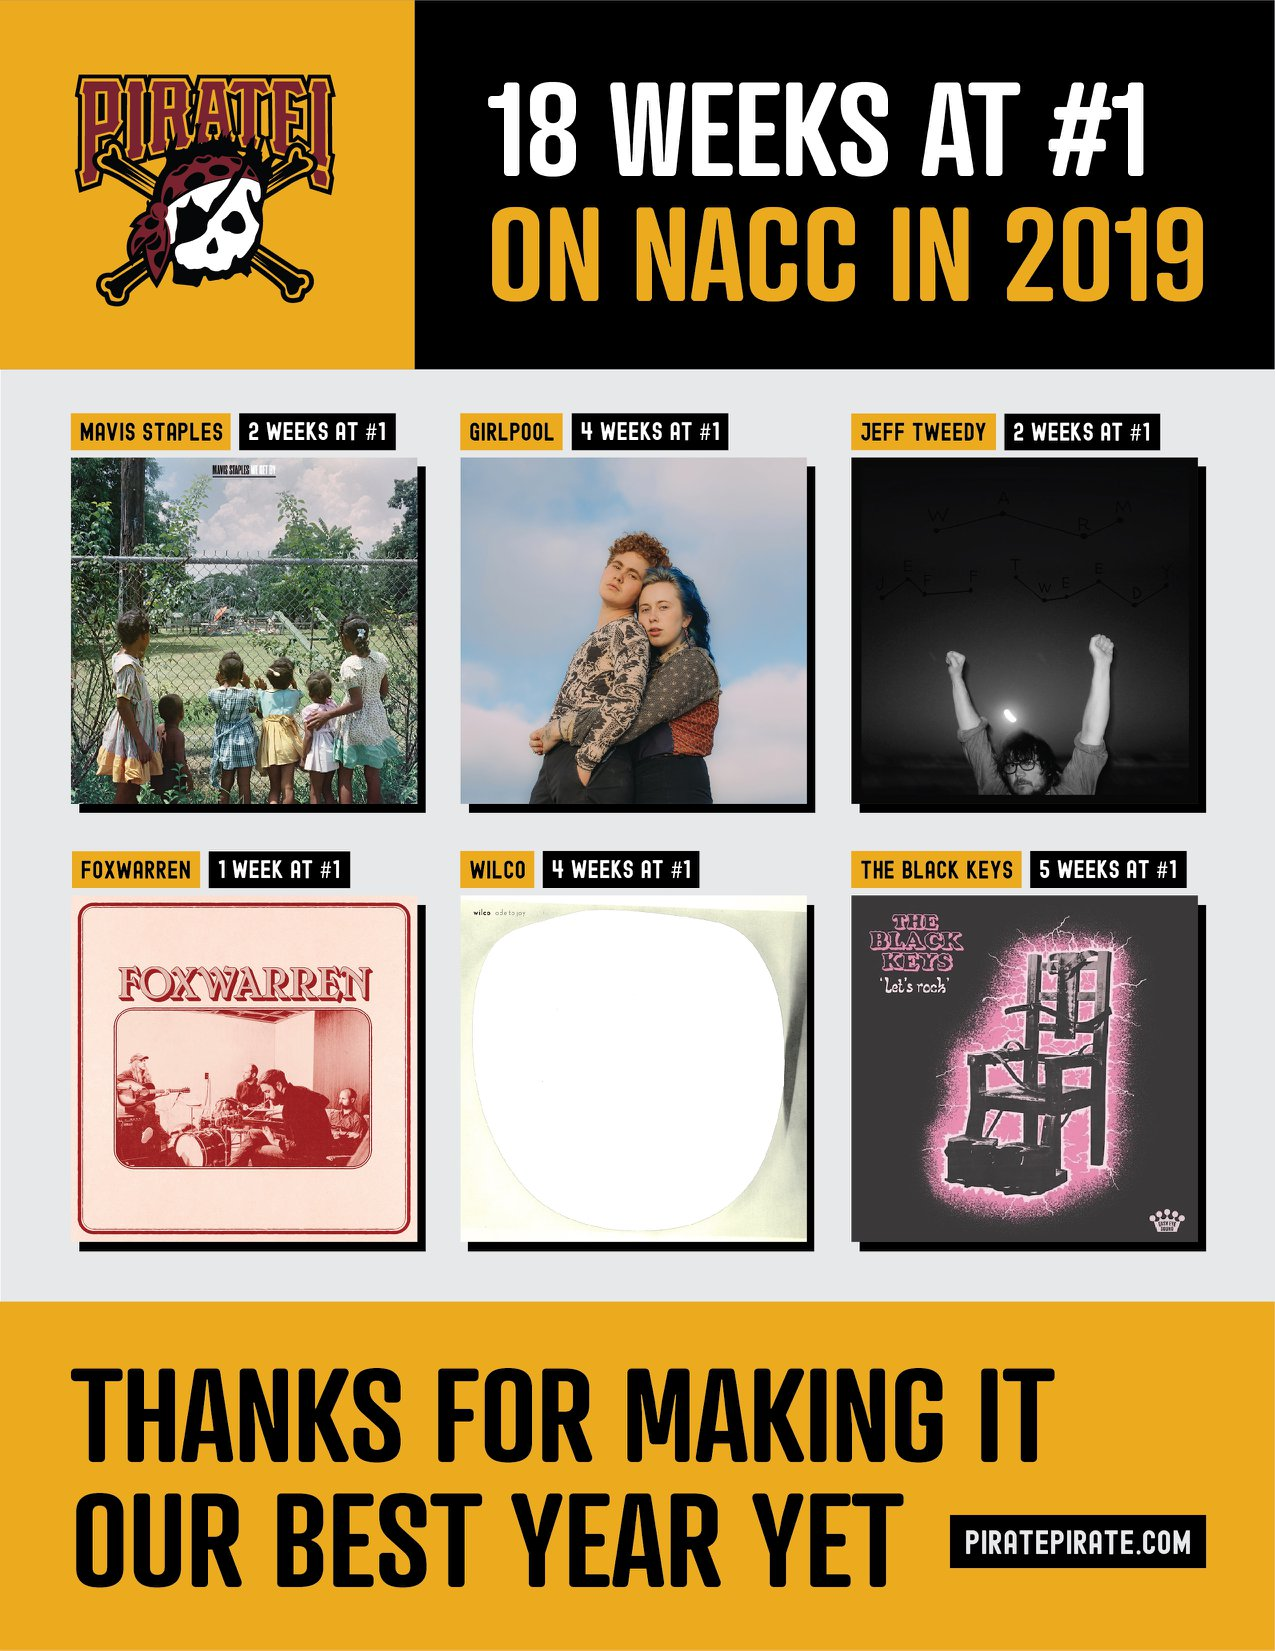 Thanks for making 2019 our best year yet!